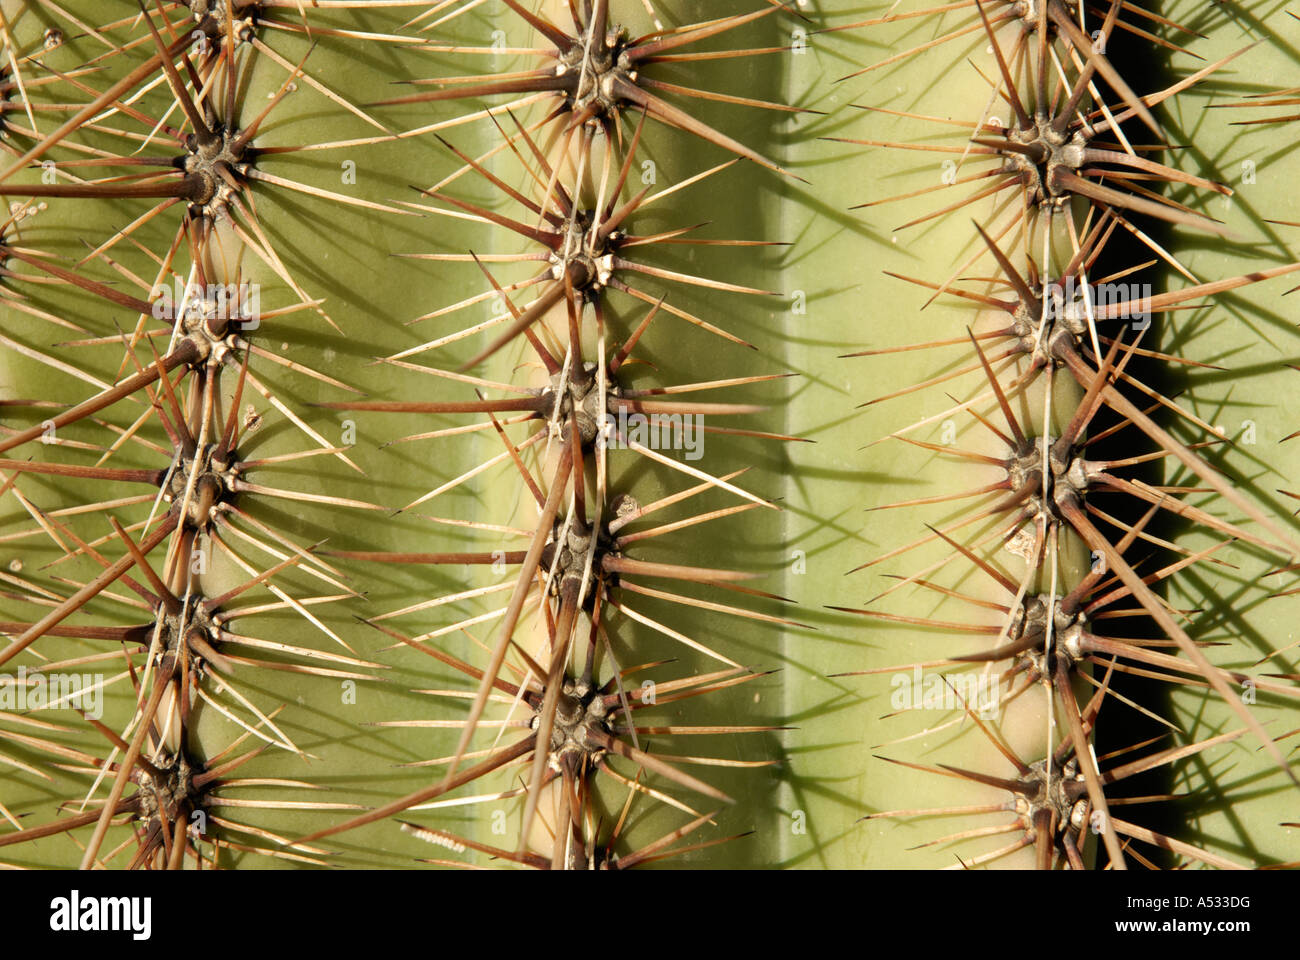 Saguaro Cactus, Carnegiea gigantea, spines thorns on three 3 pleats, close up abstract - Stock Image